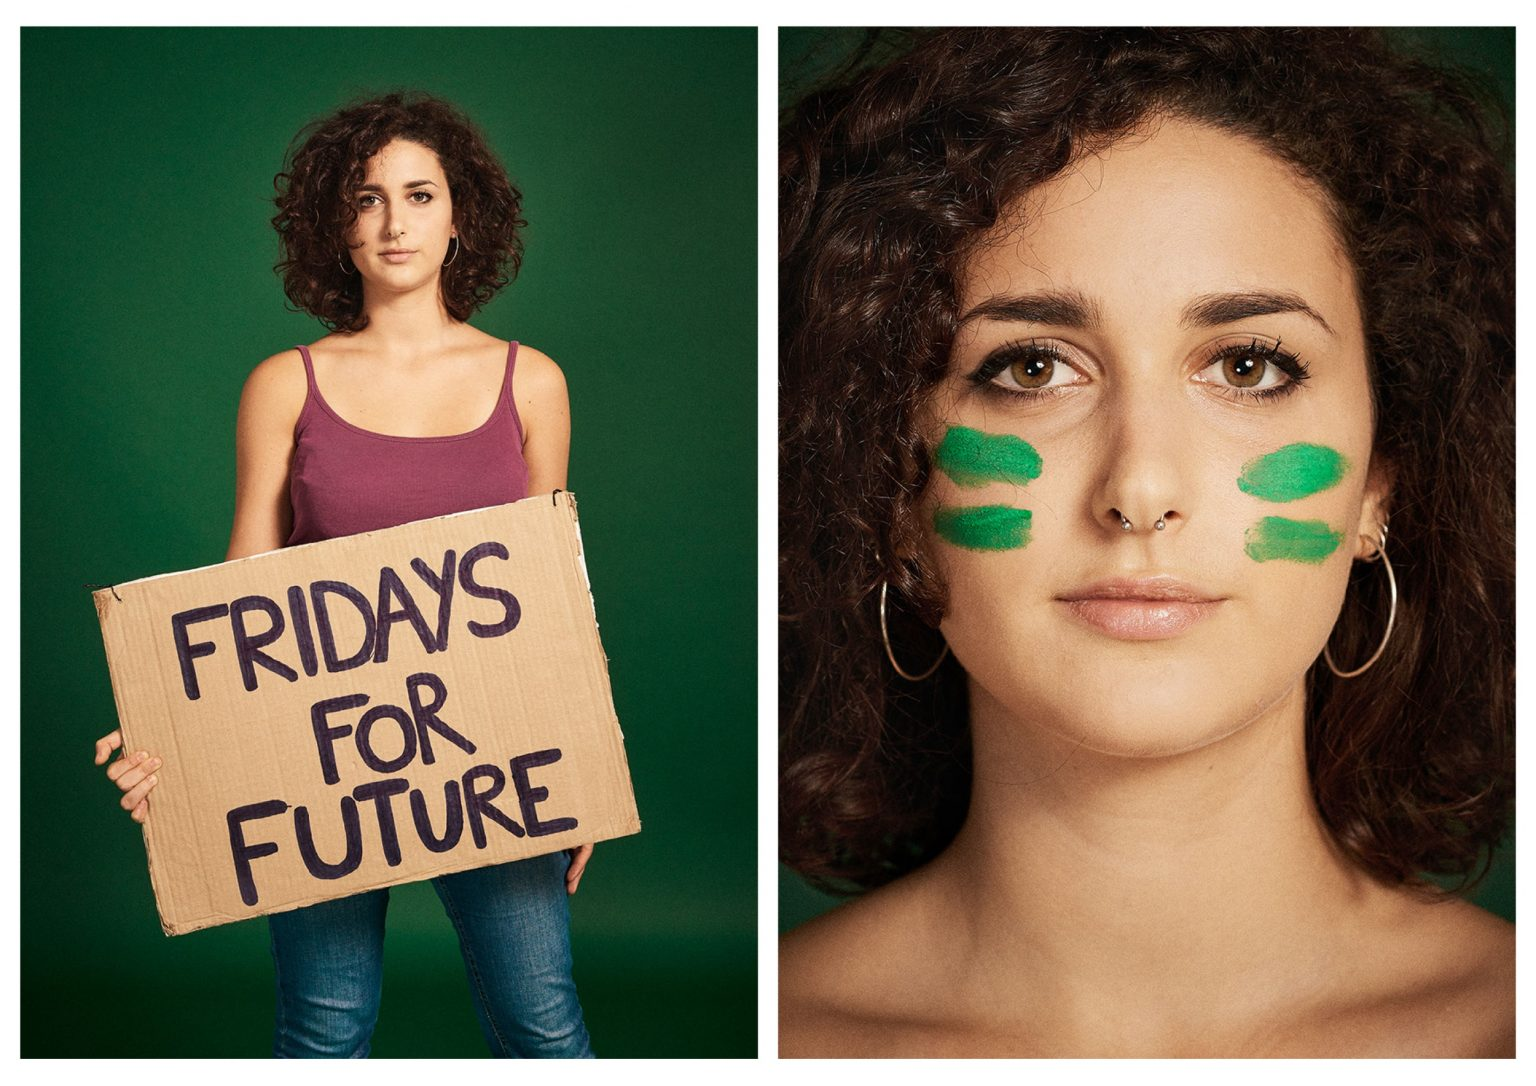 Elena Pammelati, 19 years old, is an activist for Fridays for Future Rome since February 2019, speaking as a spokeswoman during the last national assembly. She studies psychology and aspires to work in the field of social psychology.  Rome, Italy, 2019